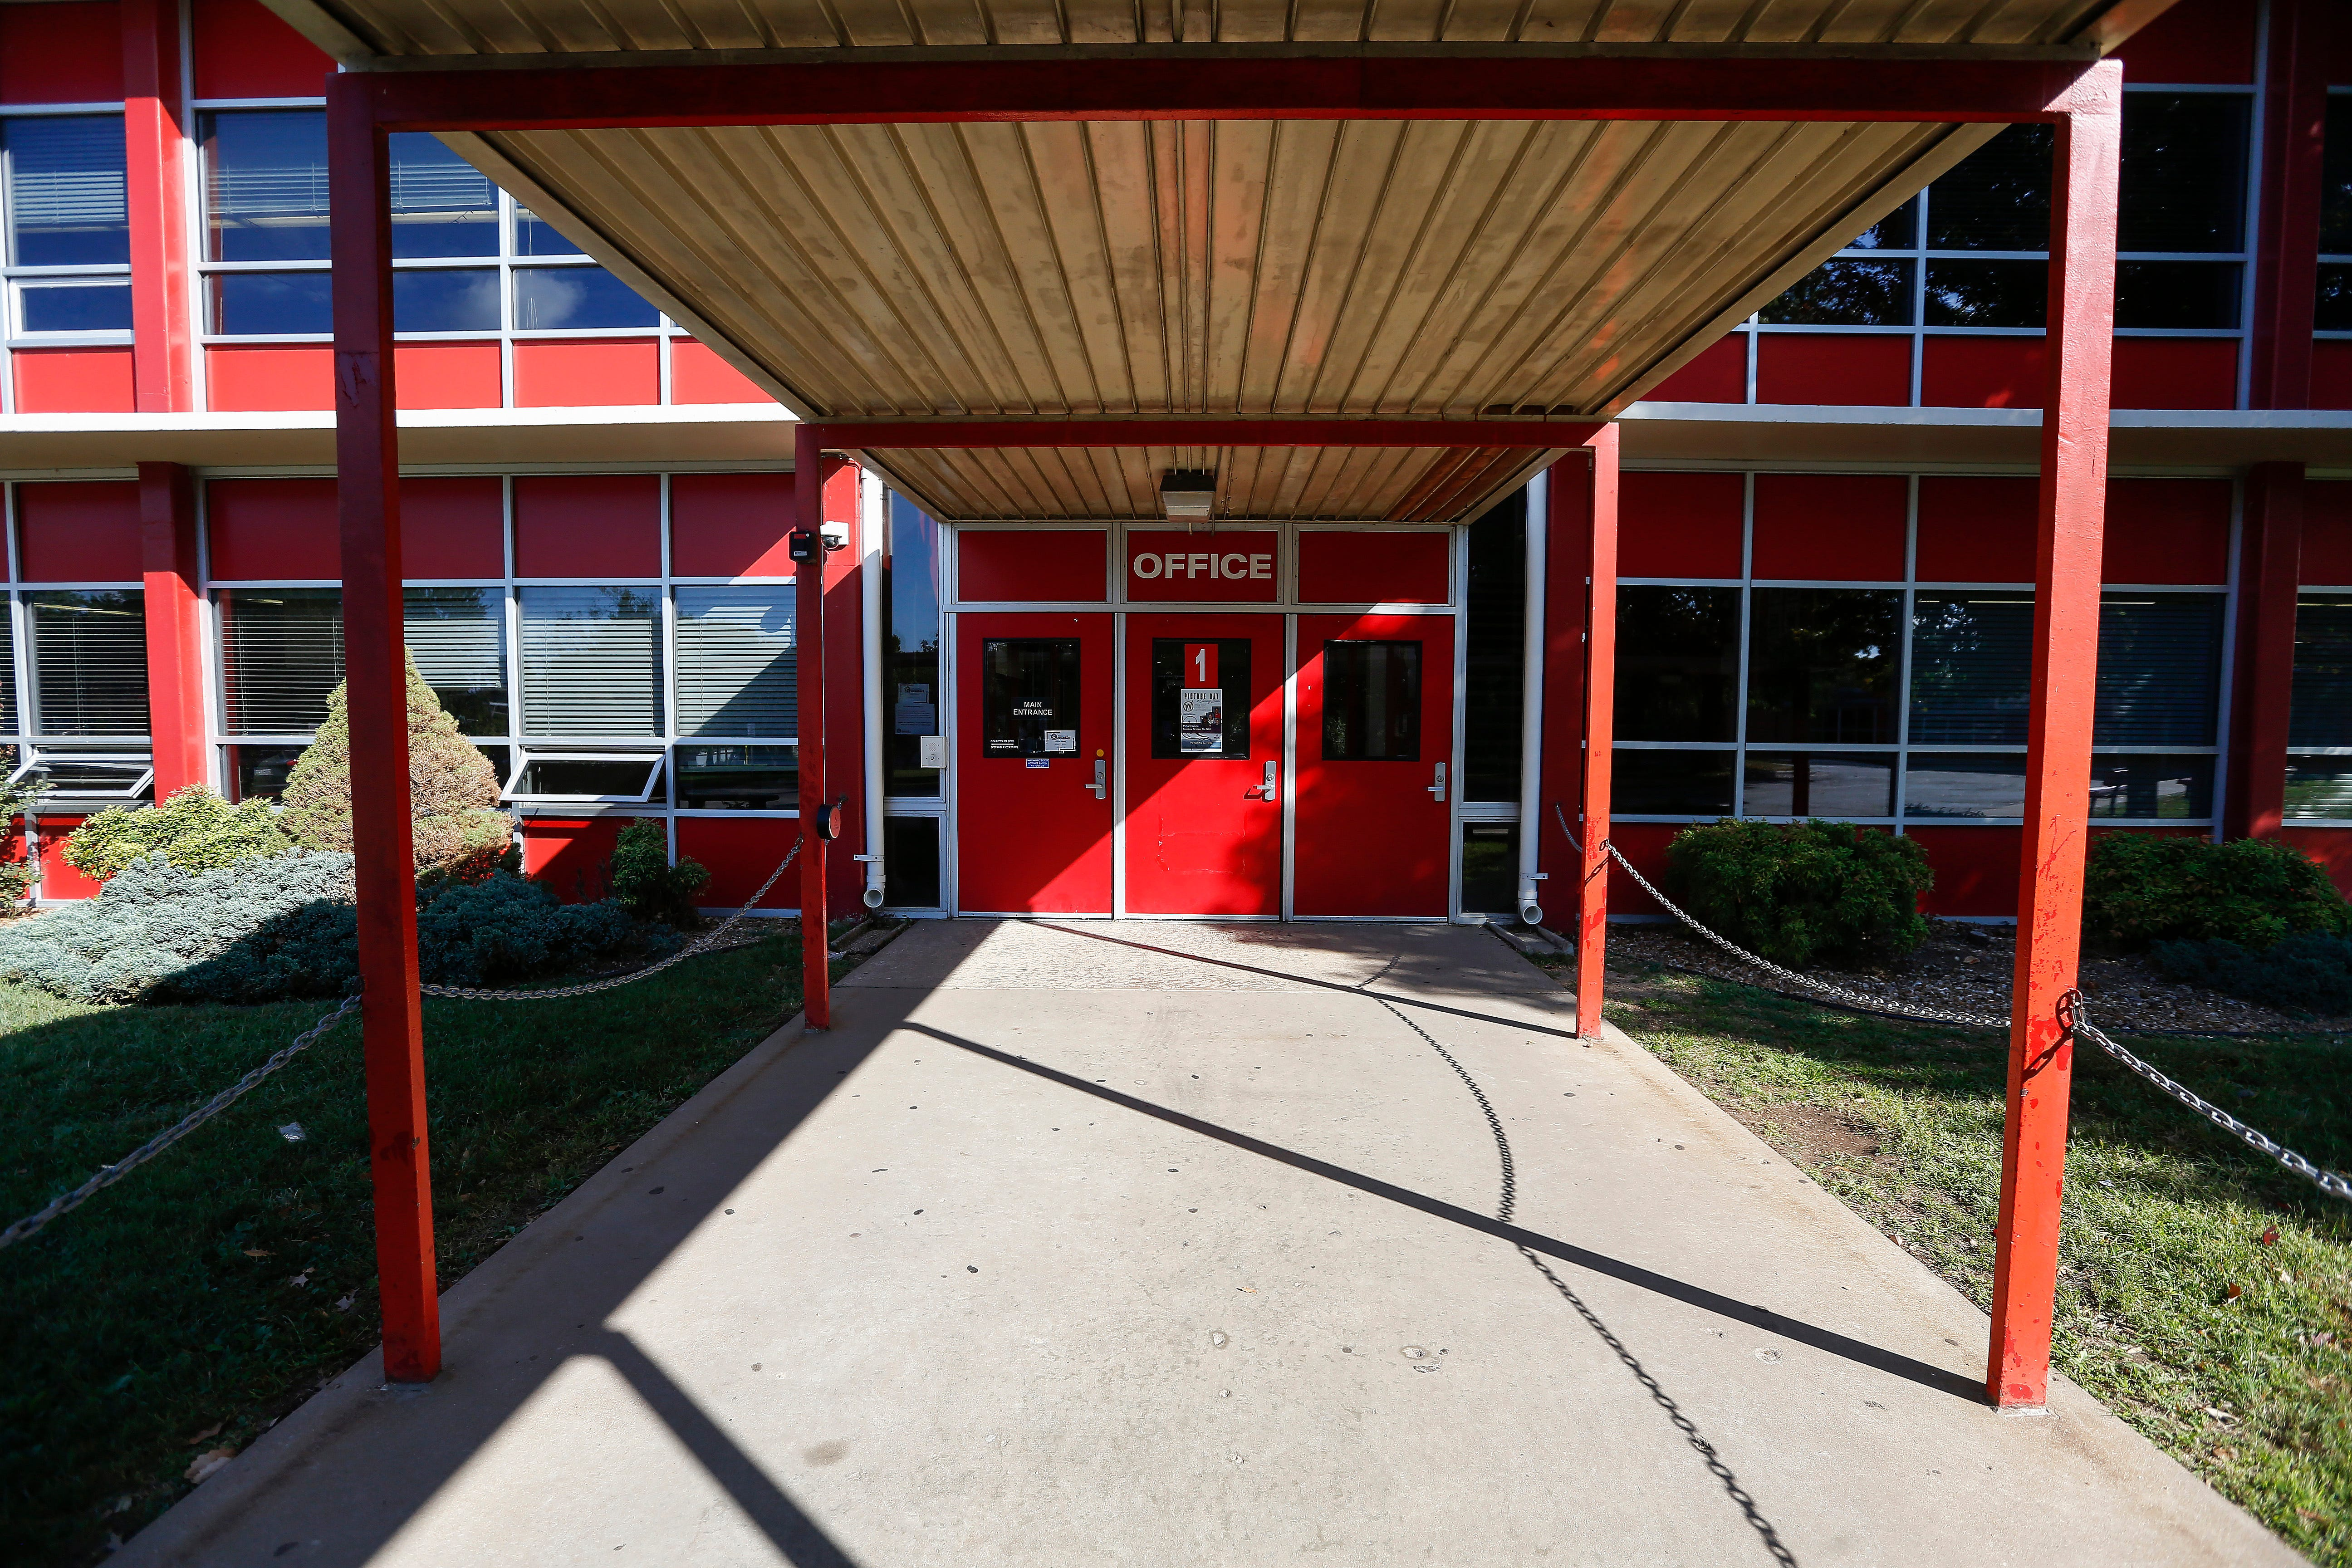 The entrance to the main office at Pershing Middle School.